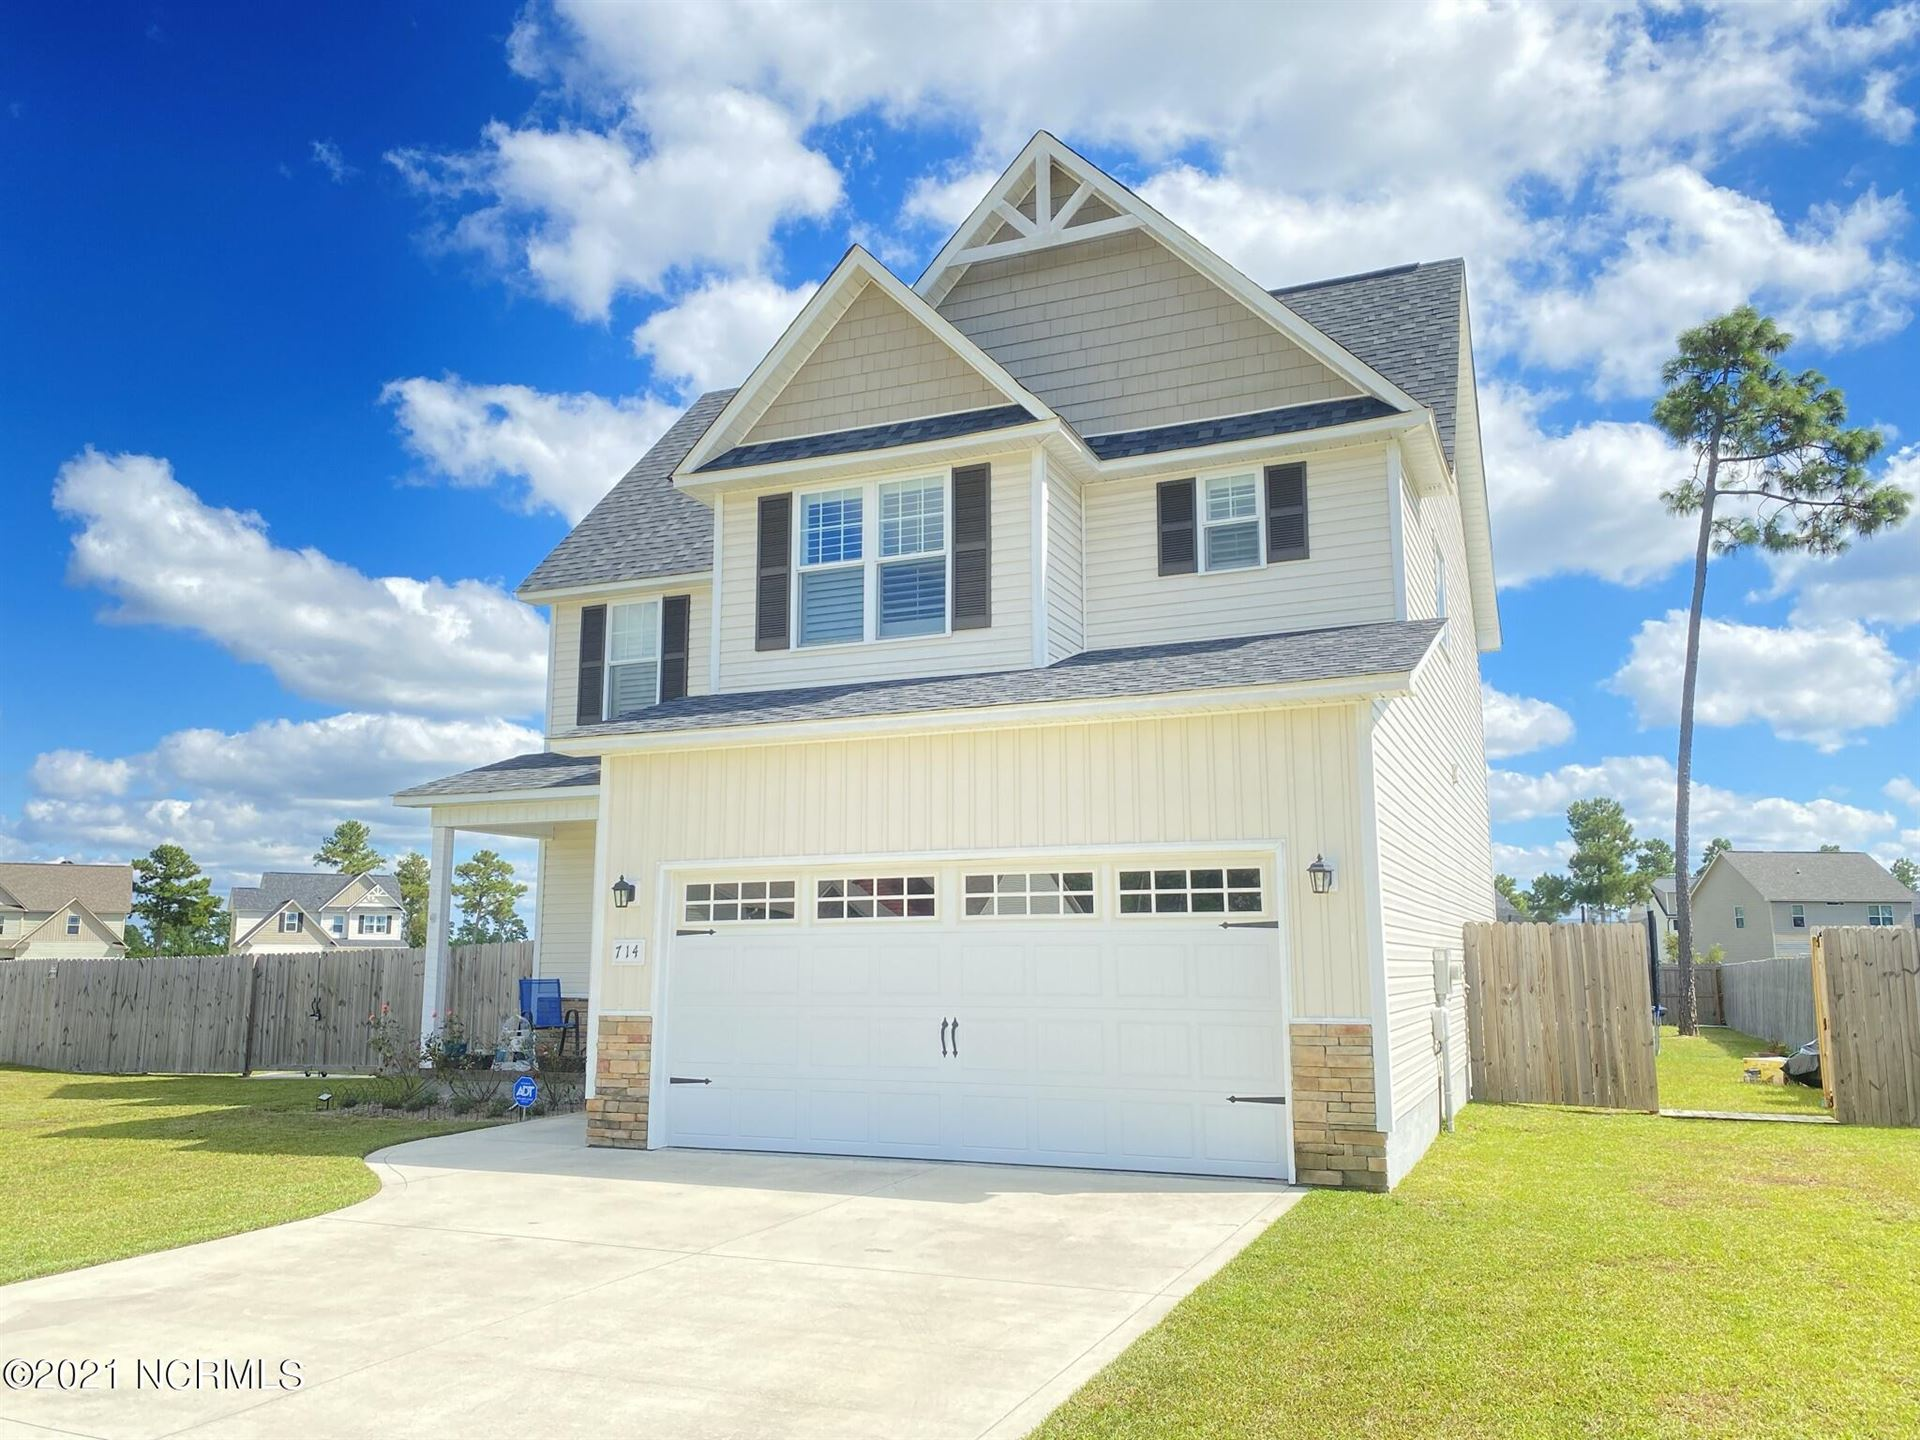 Photo of 714 Addor Drive, Richlands, NC 28574 (MLS # 100292123)